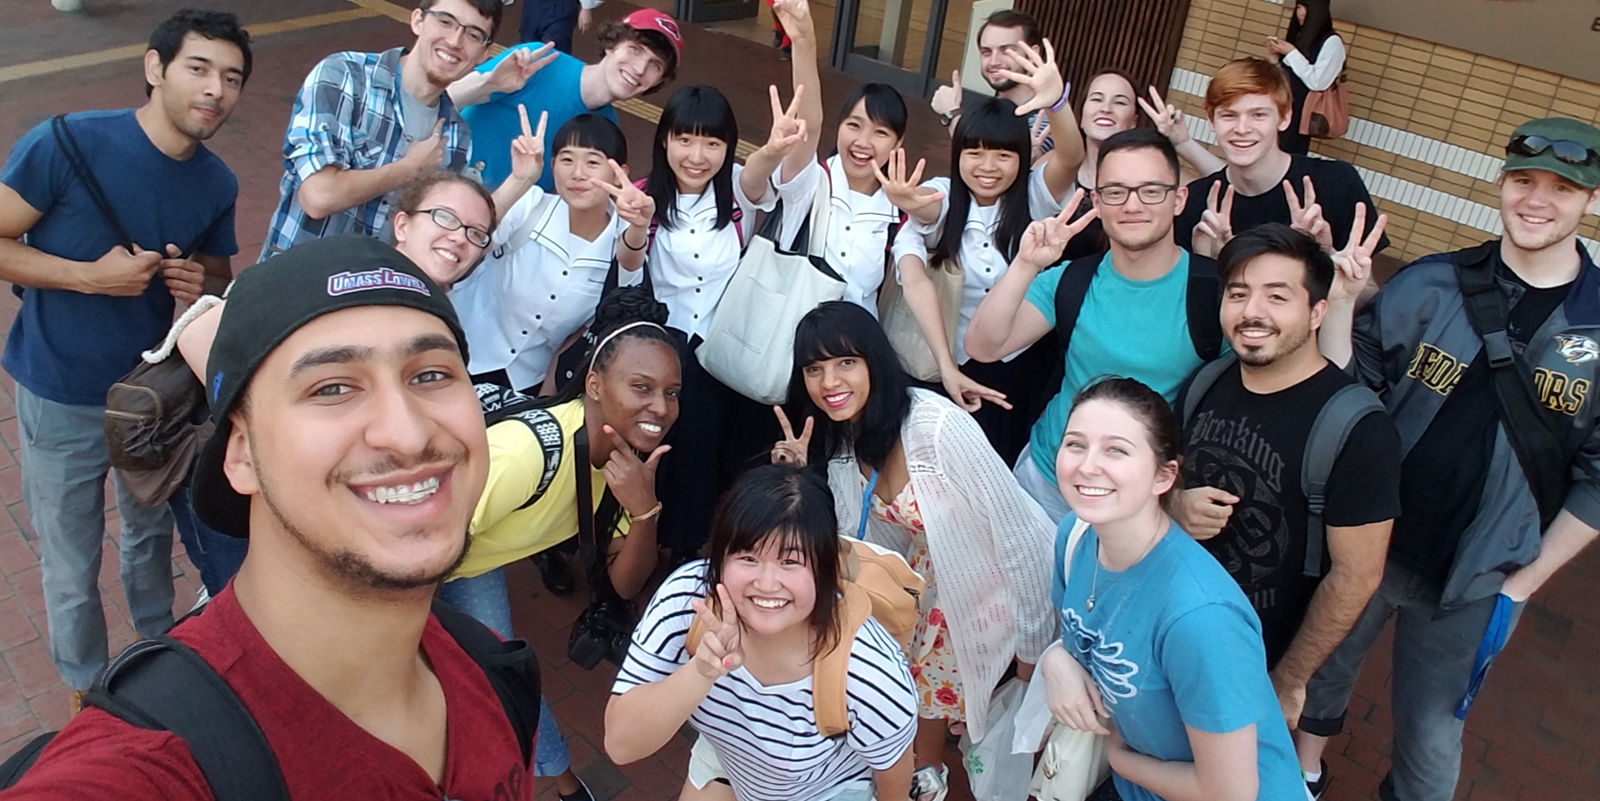 James Joutras poses with a group of students in Japan